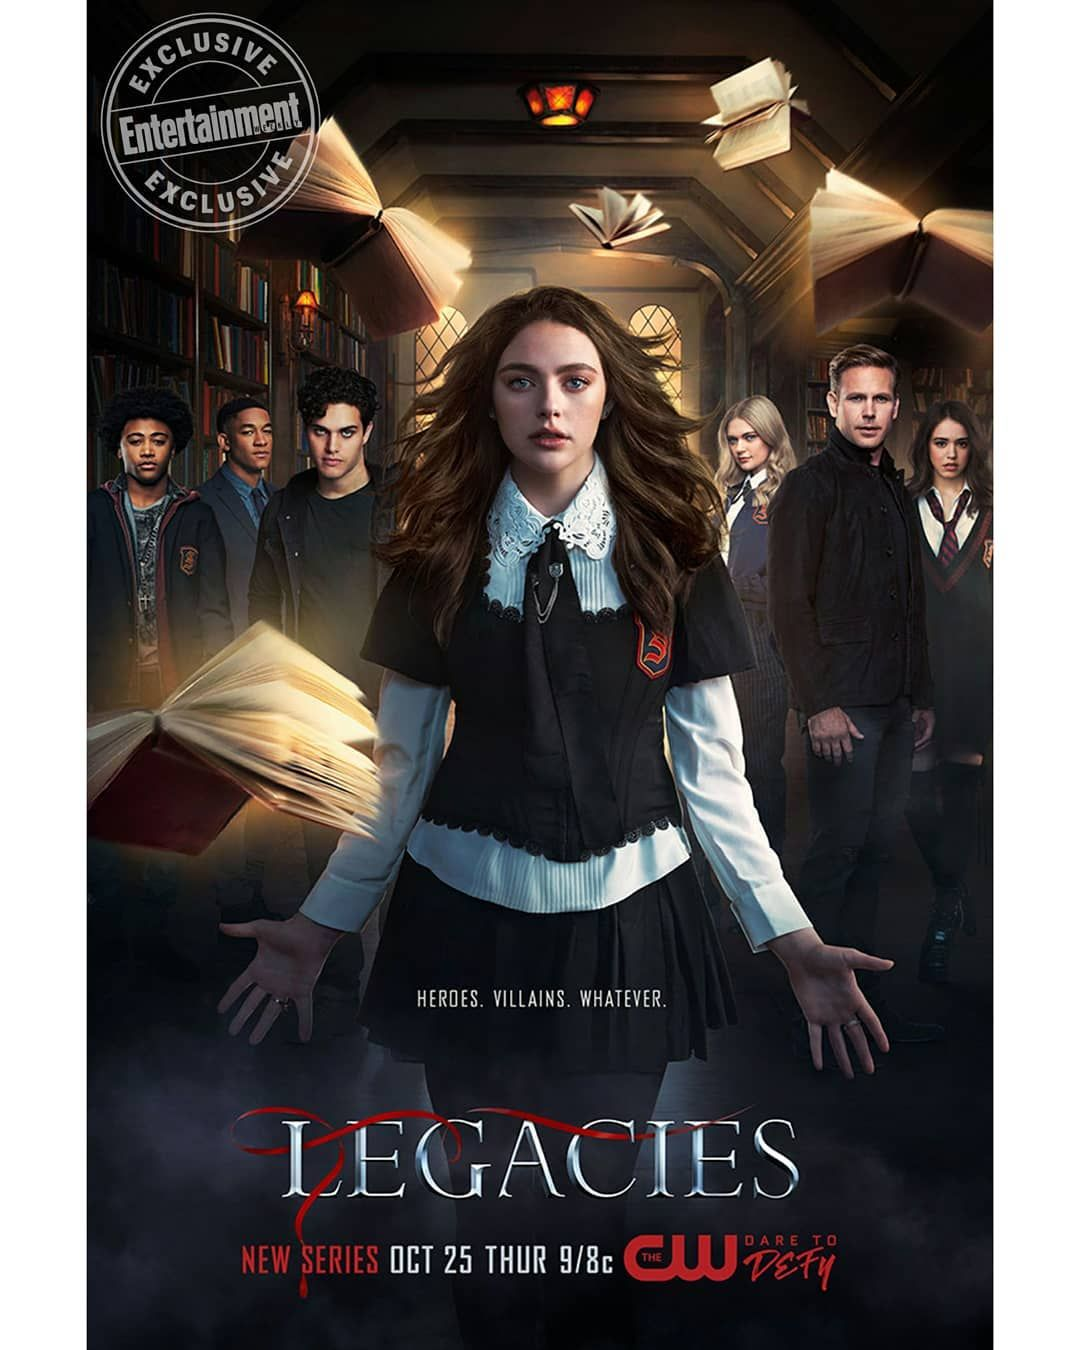 #Legacies Season 1 Poster! @entertaimentweekly